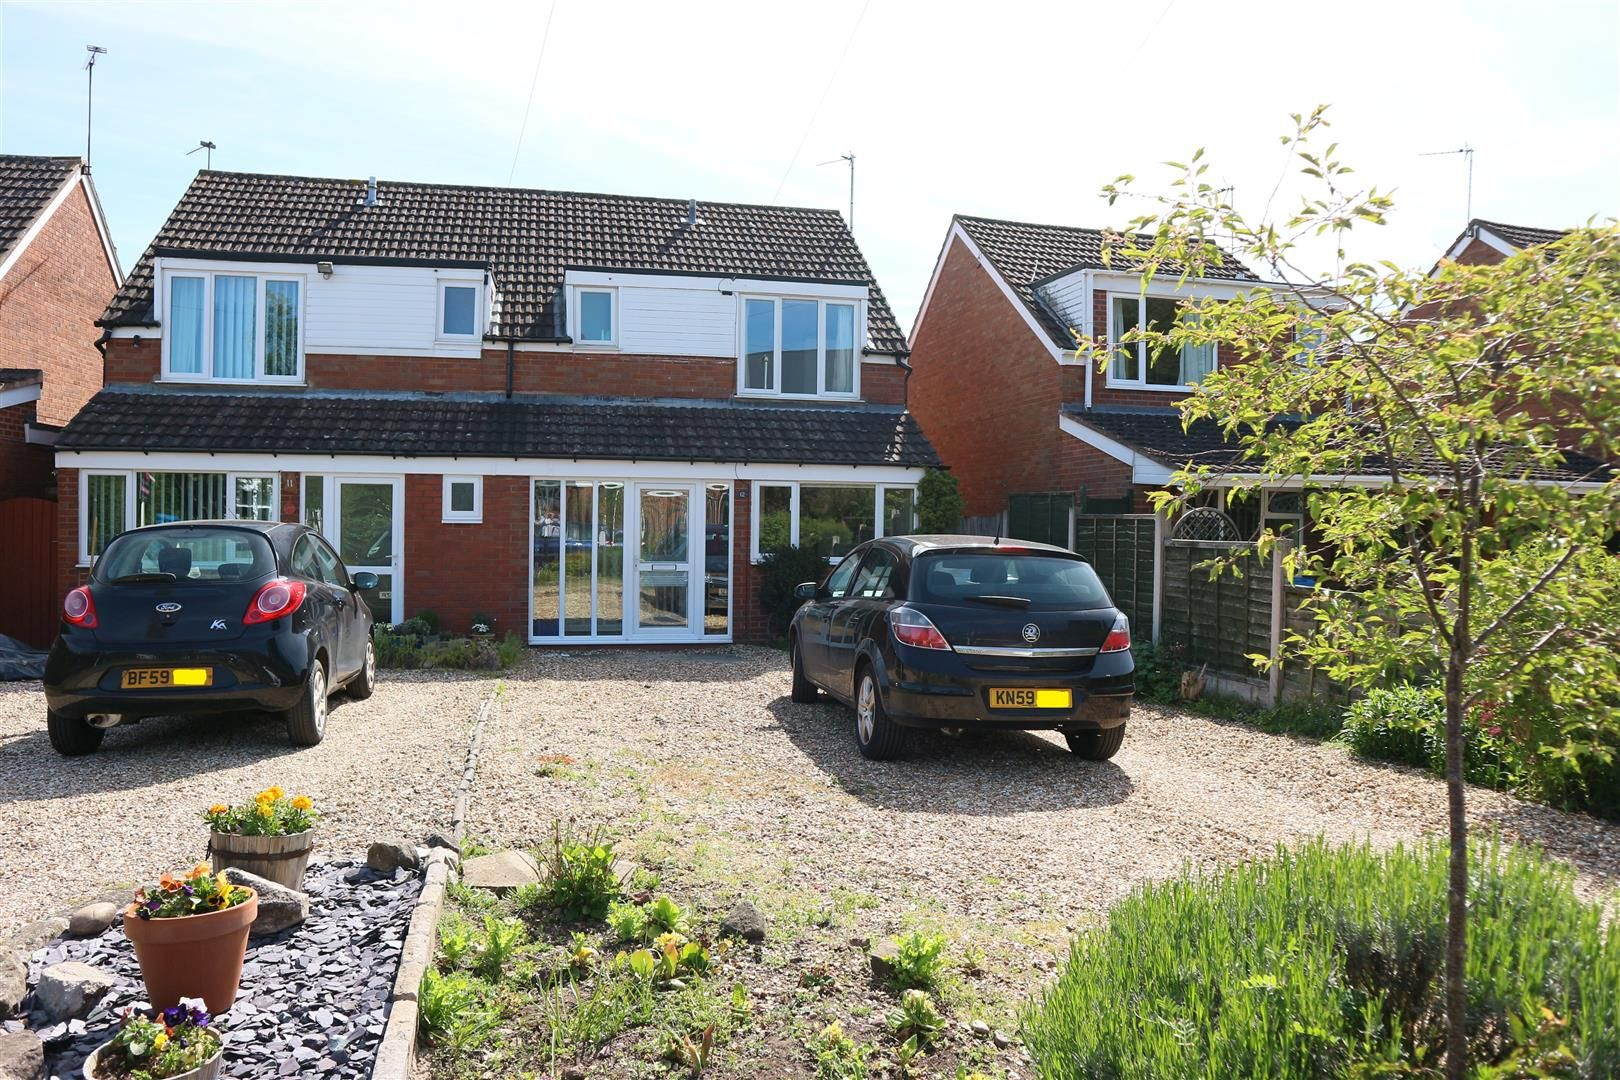 3 bed semi-detached for sale in Kinver 1